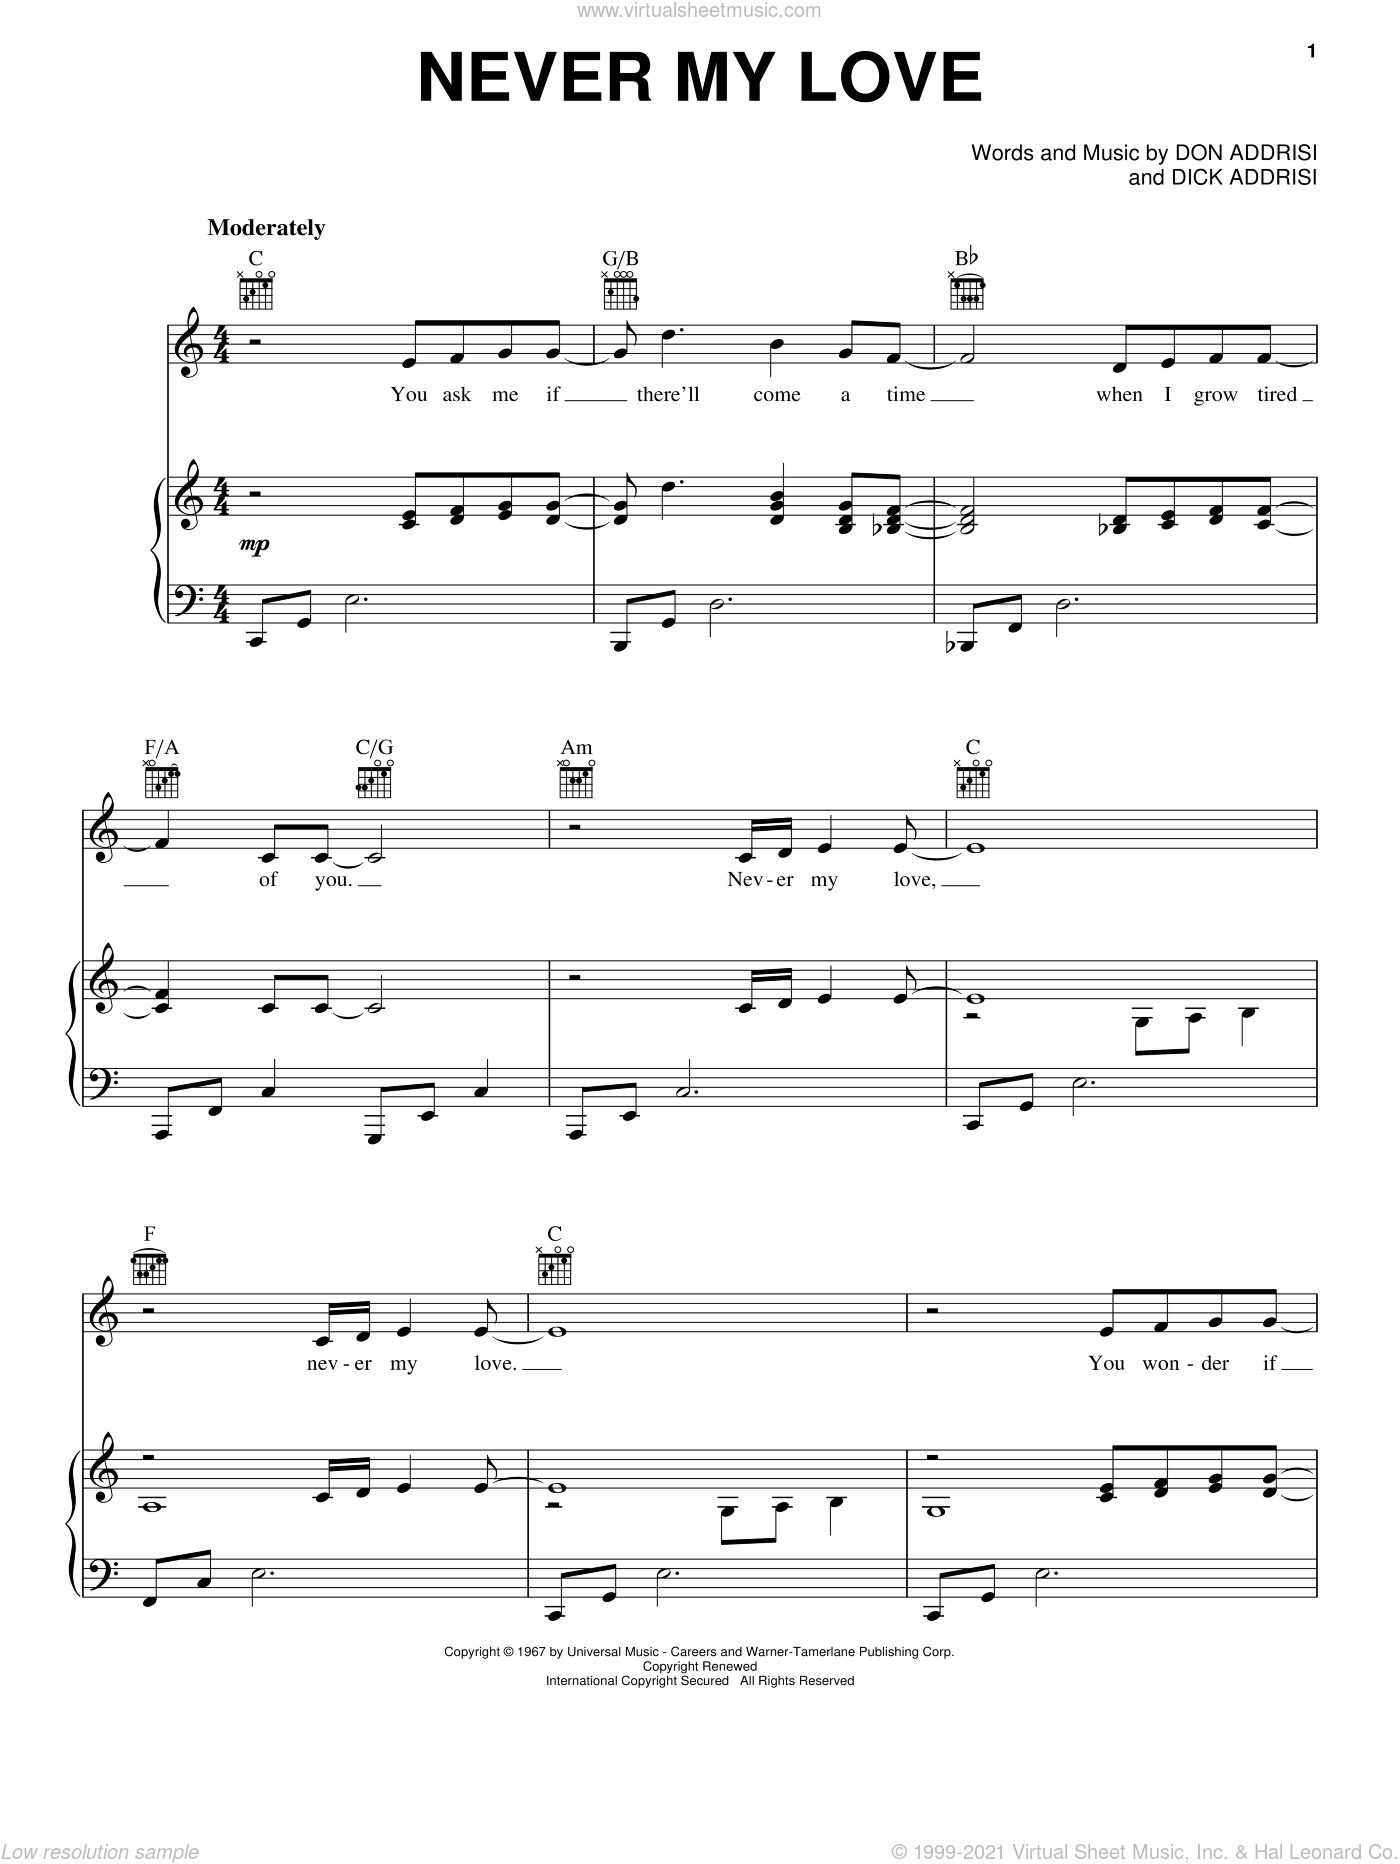 Never My Love sheet music for voice, piano or guitar by Don Addrisi, The Association, The Fifth Dimension and Dick Addrisi. Score Image Preview.